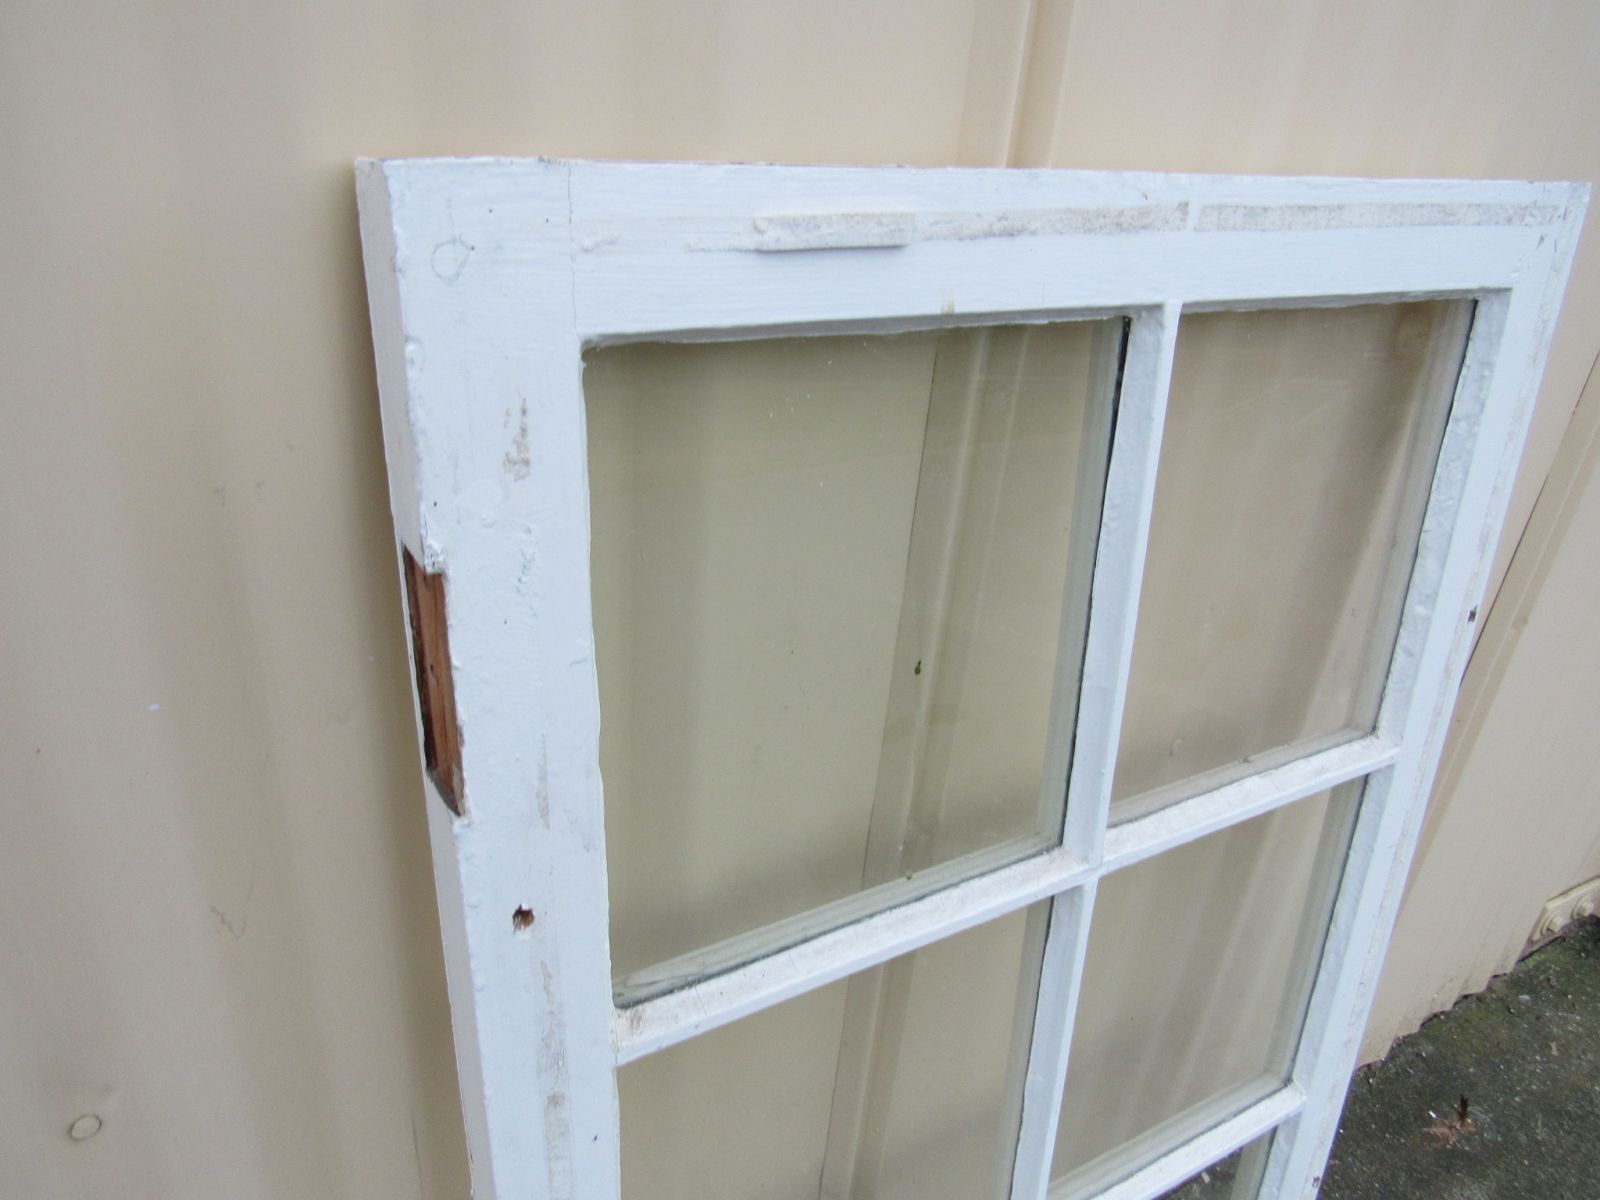 Handcrafted Antique Exterior True Divided Window Type E 37 1/2in x 24in Wood